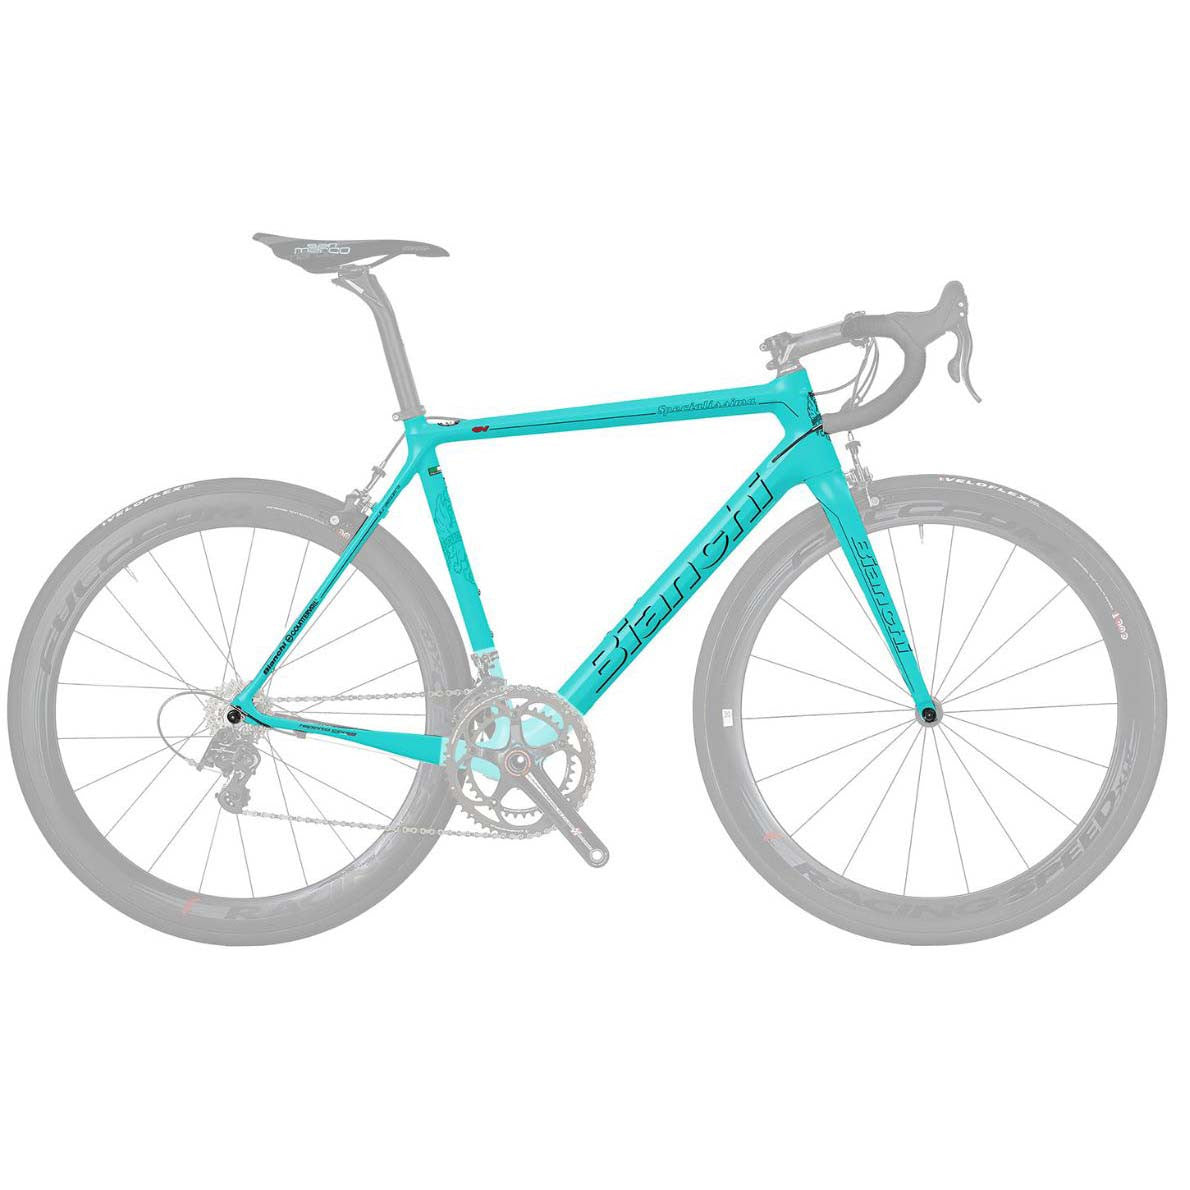 Bianchi Specialissima Dura Ace 11sp Di2 Compact 52/36